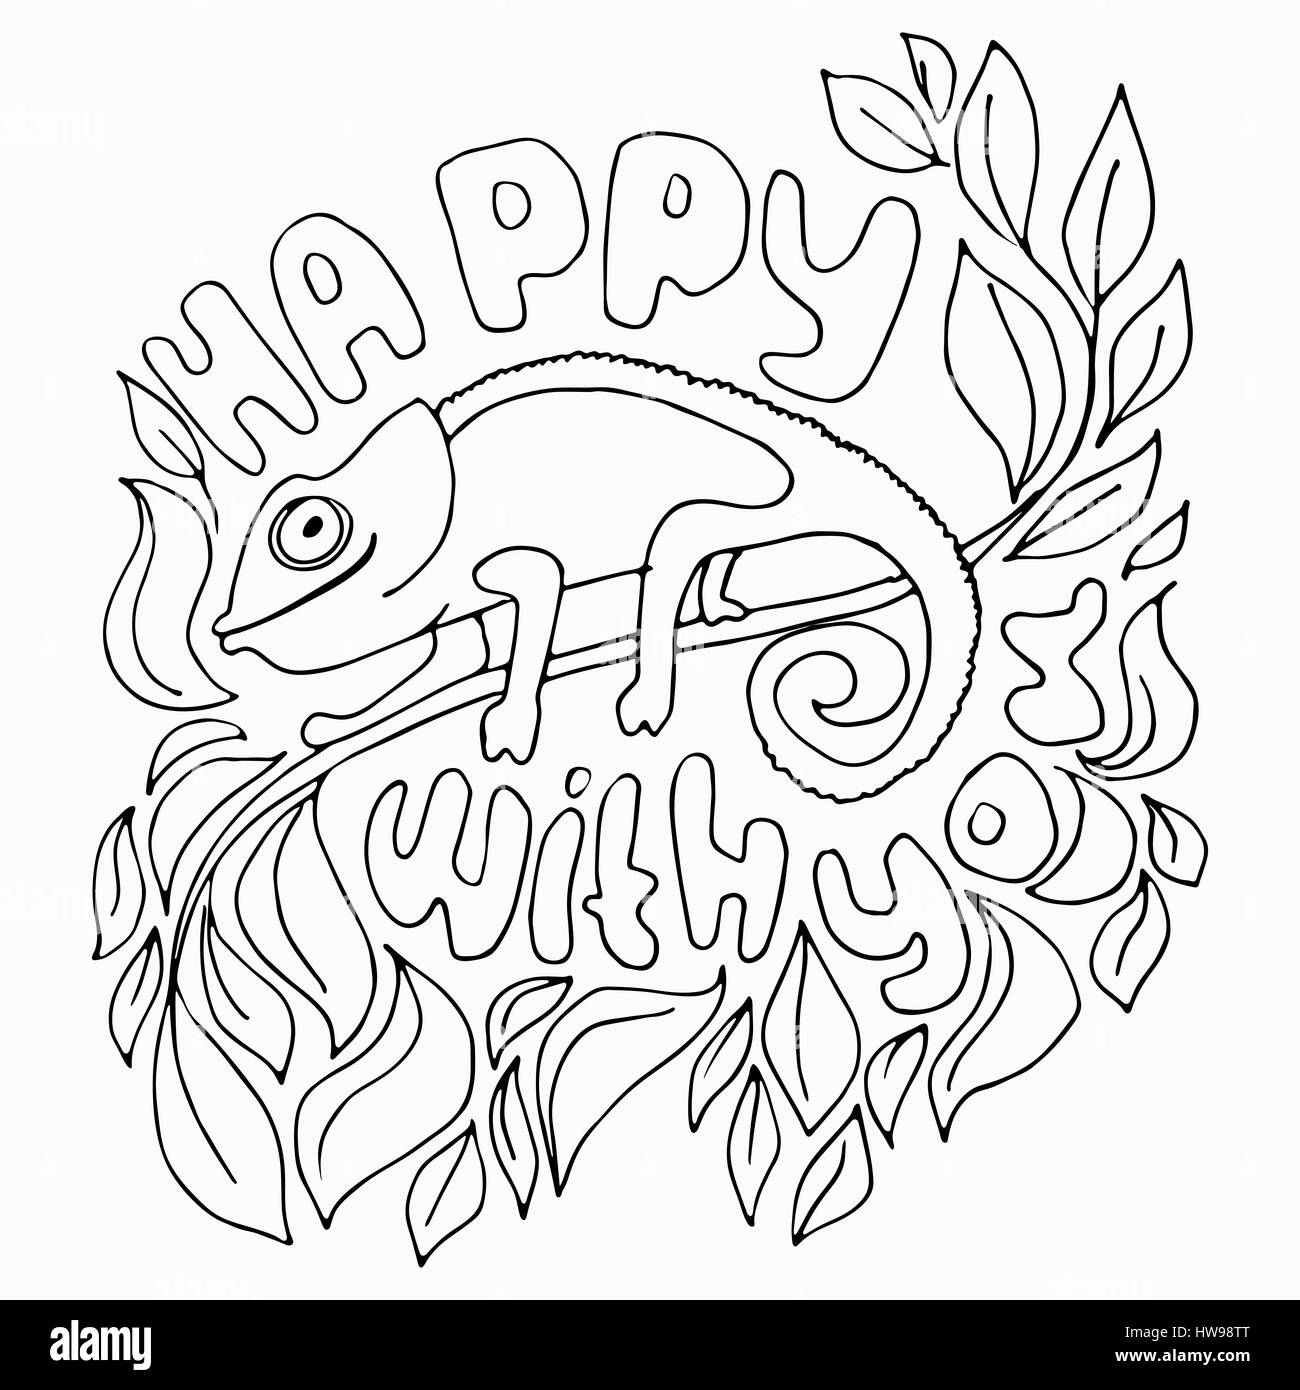 Happy With You Silhouette Illustration